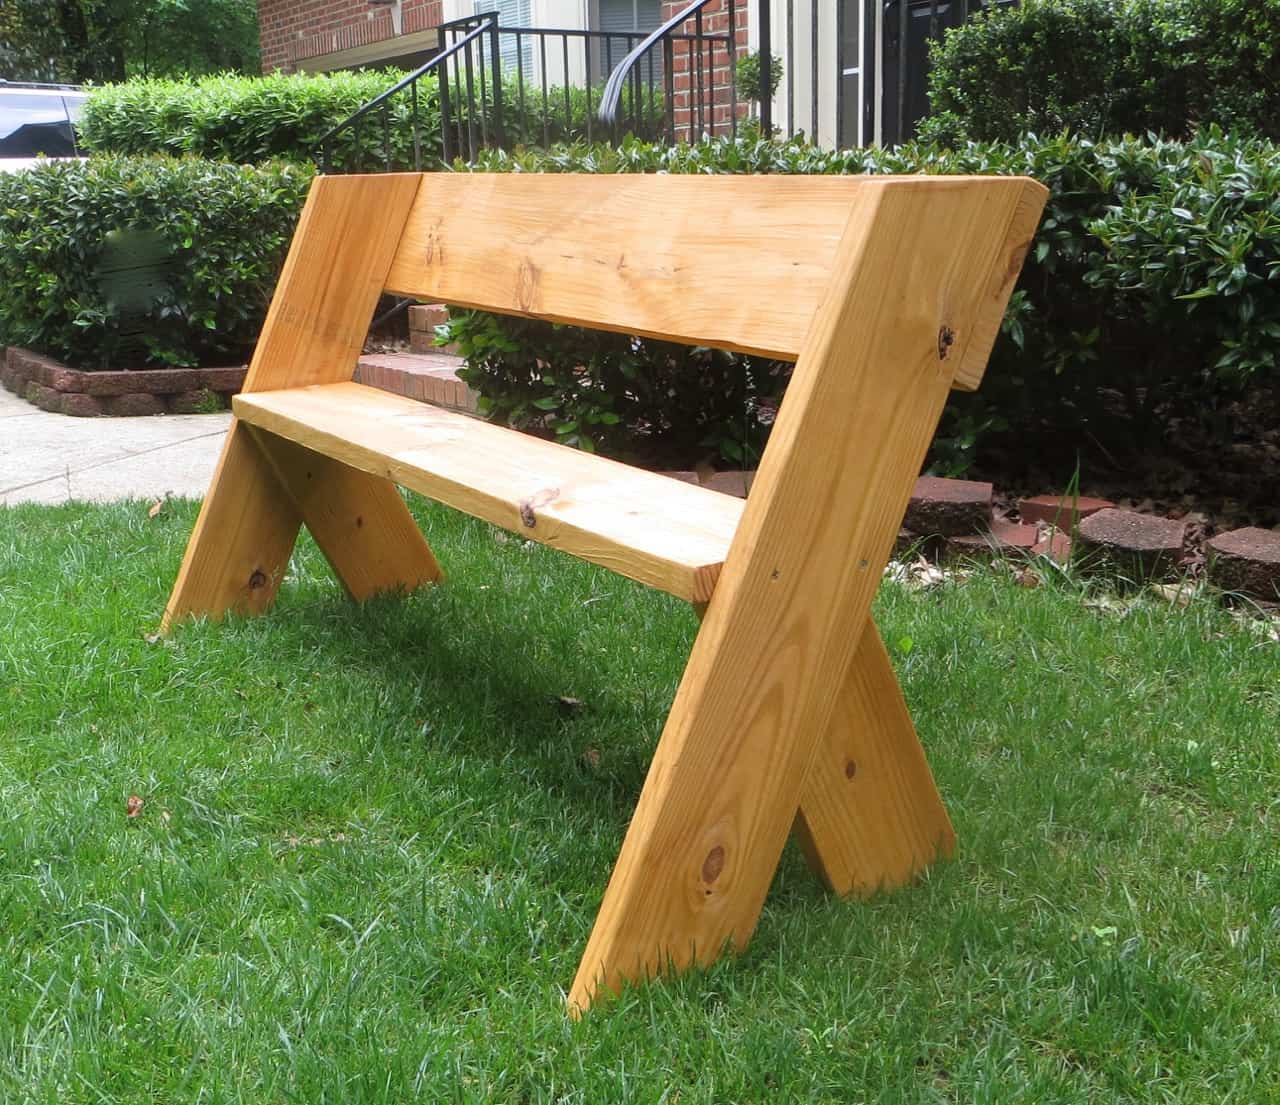 DIY Outdoor Wood Projects U2013 OBSiGeN